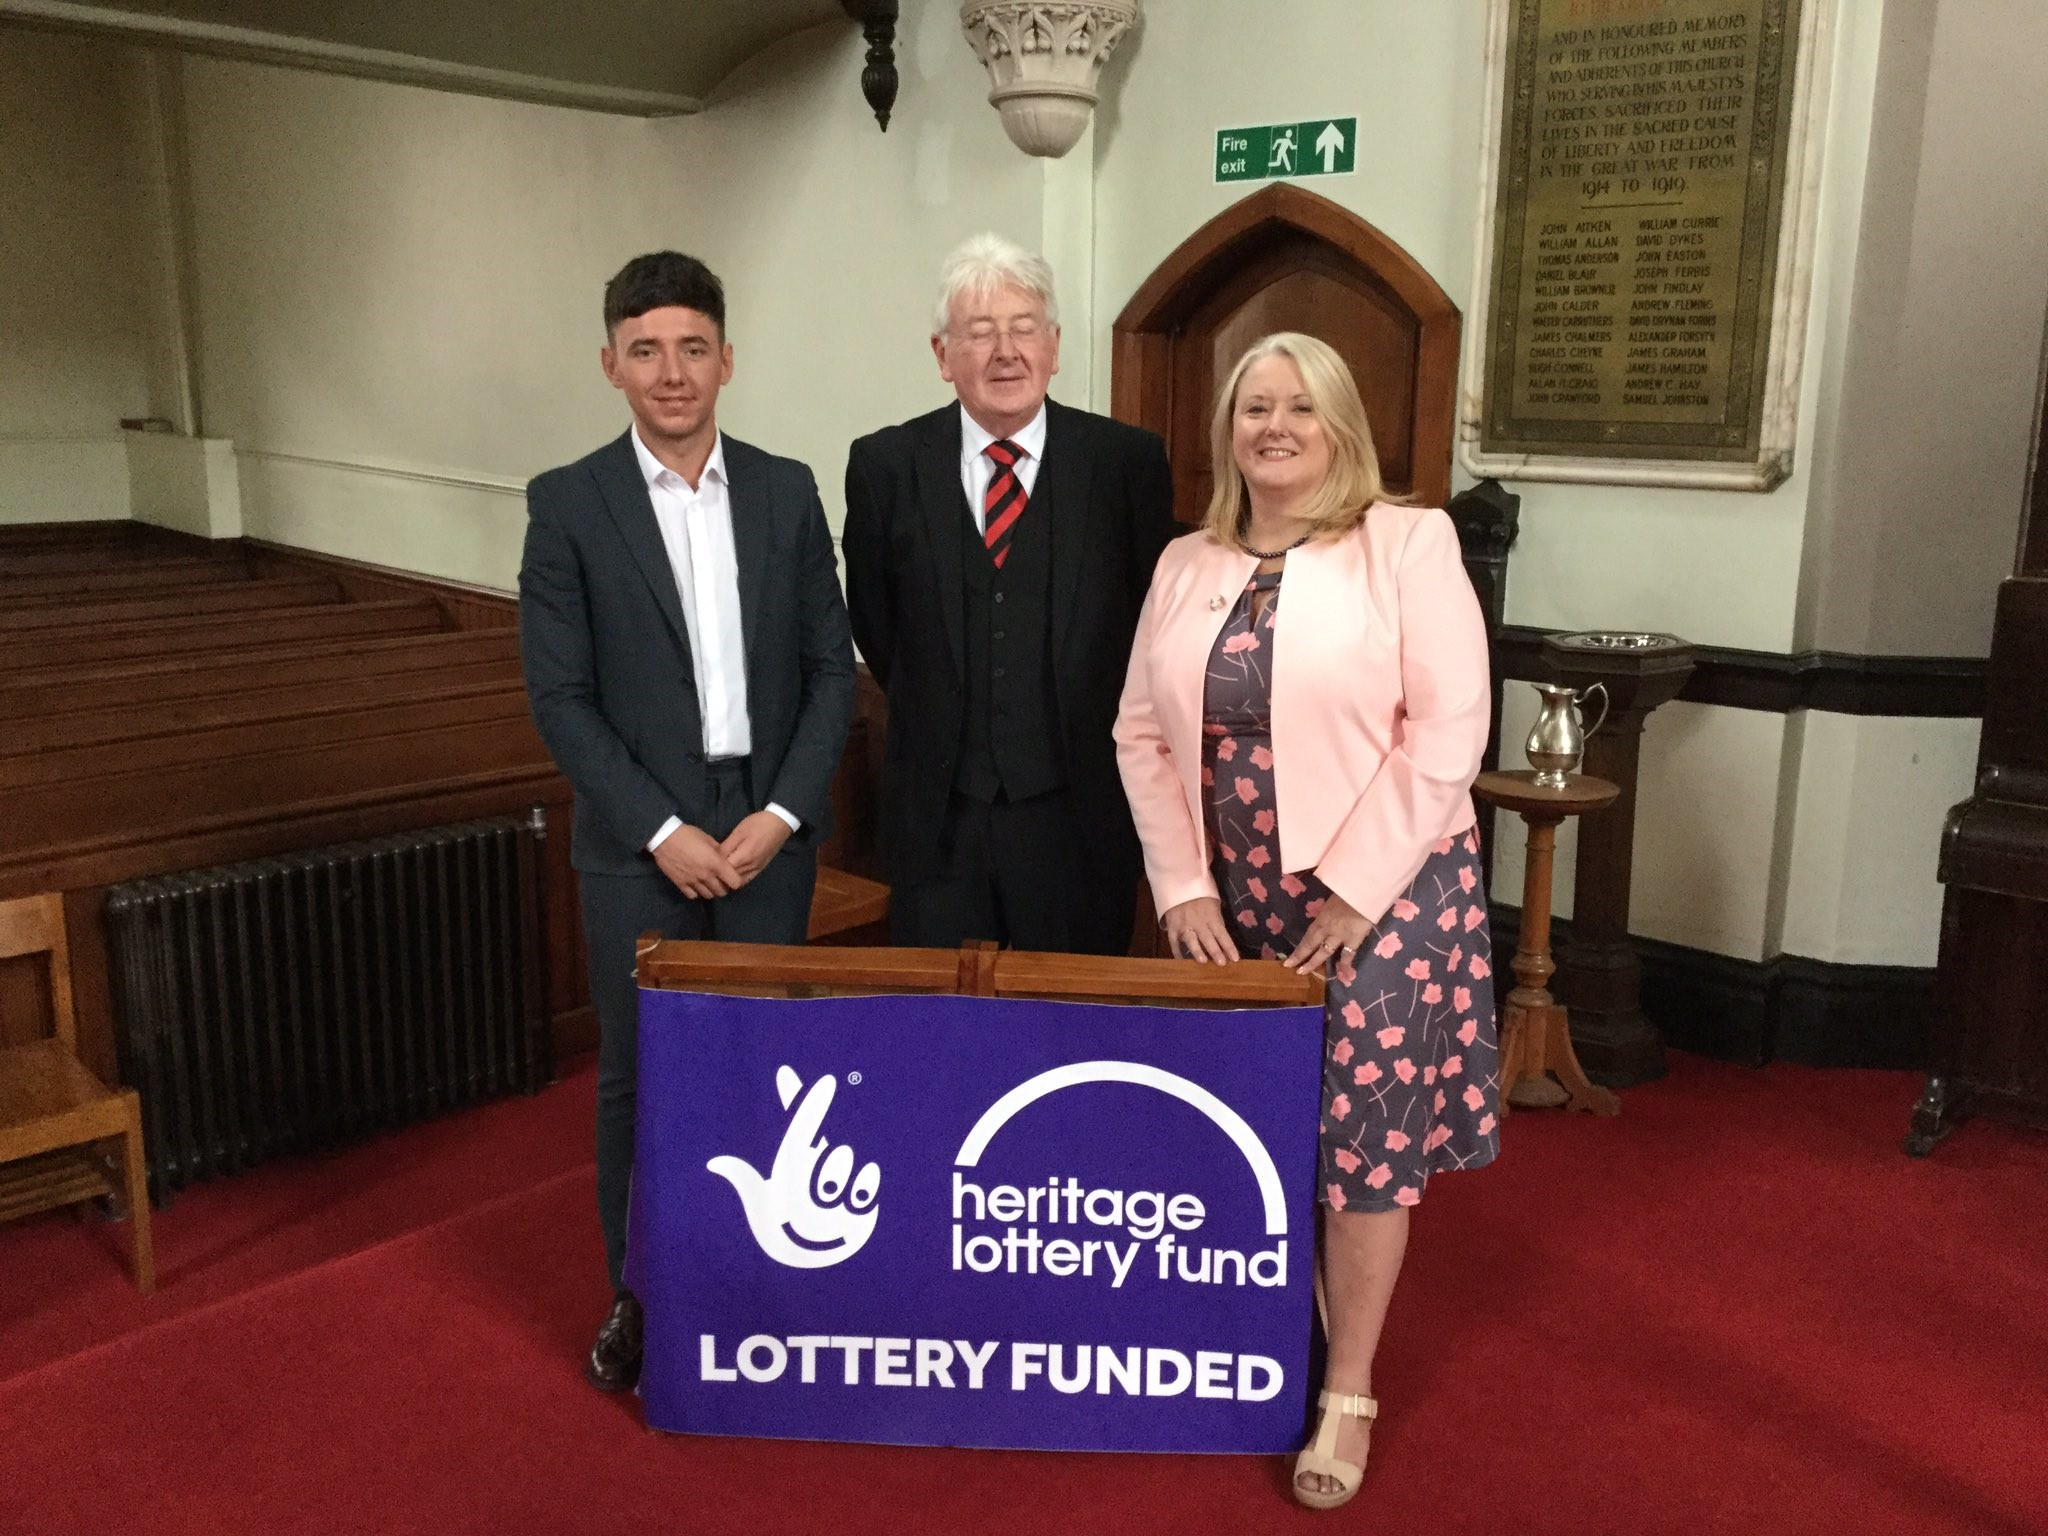 Cadzow Parish Church Heritage Lottery Fund